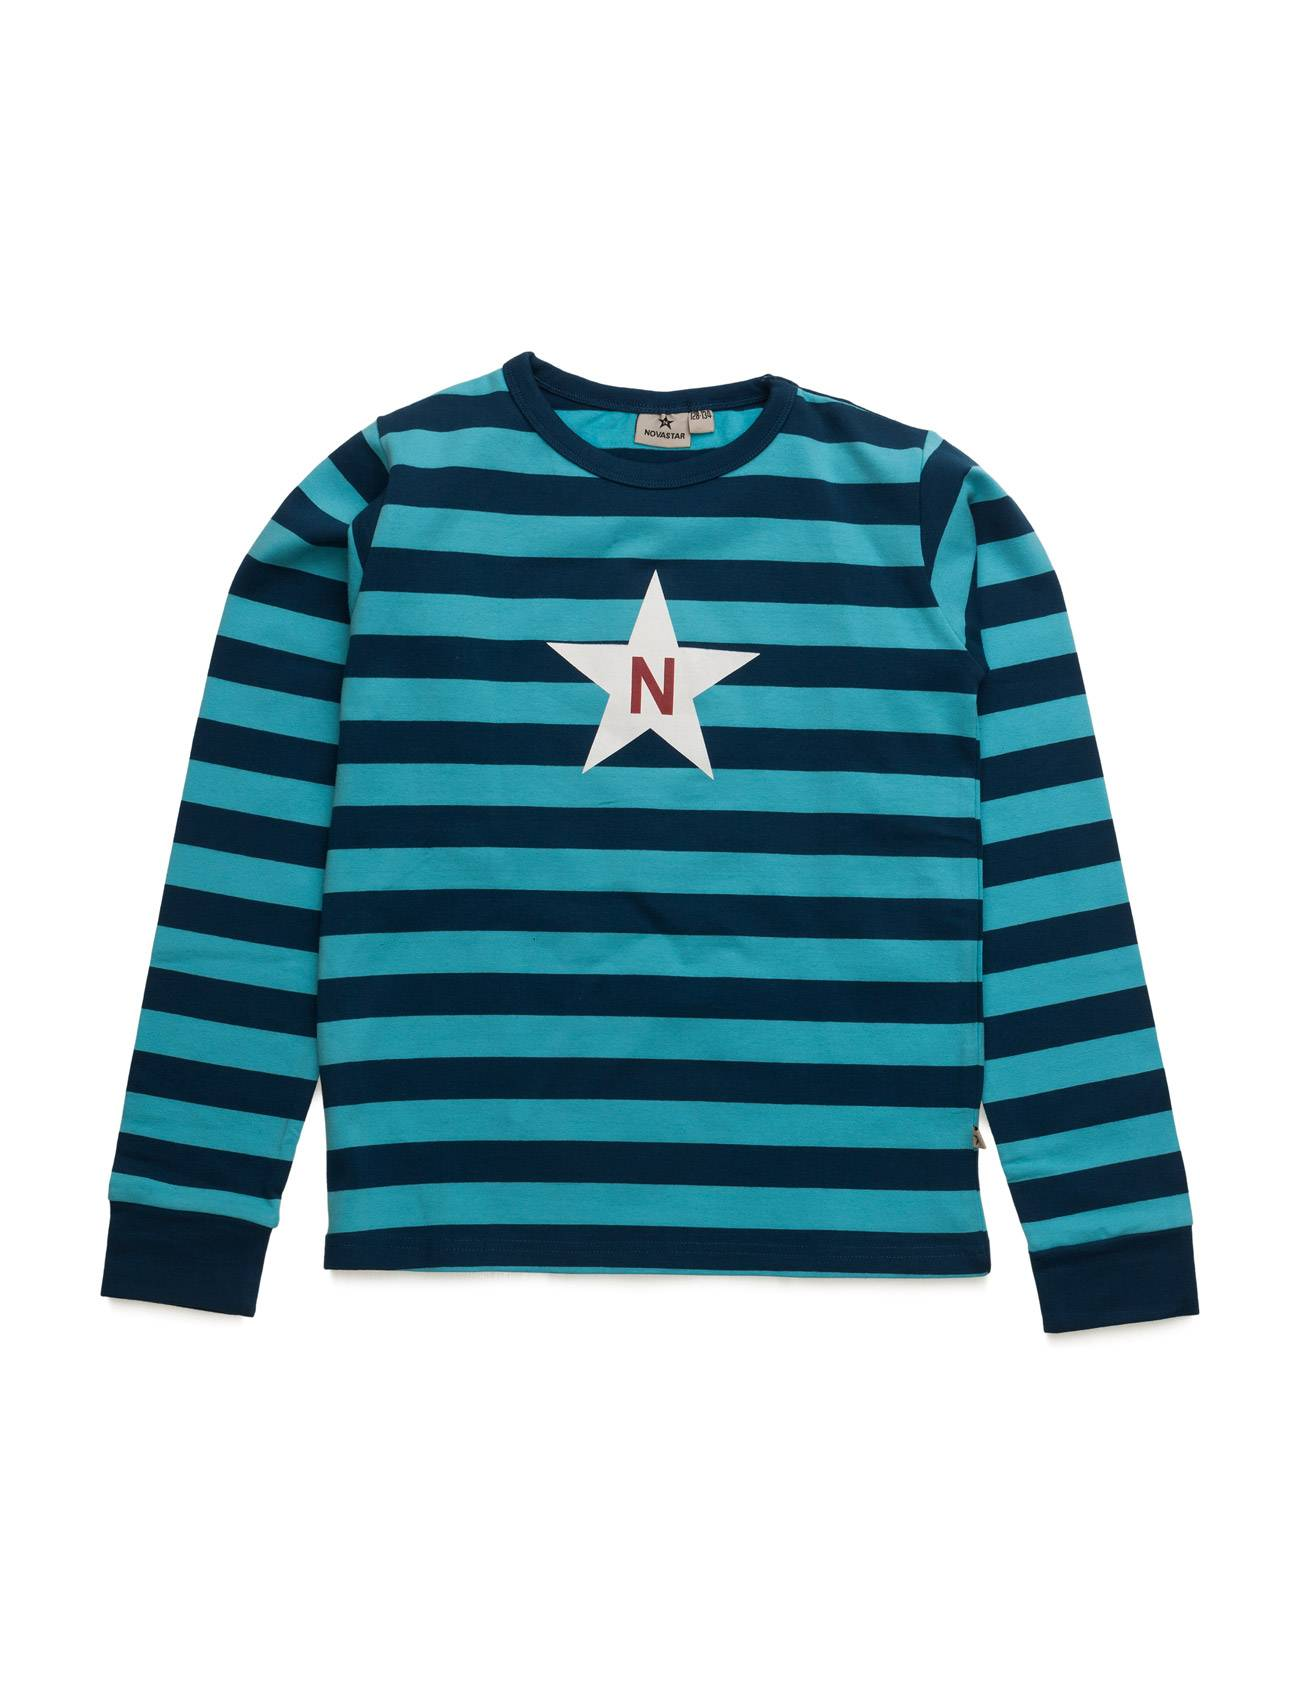 NOVA STAR Striped T Marine